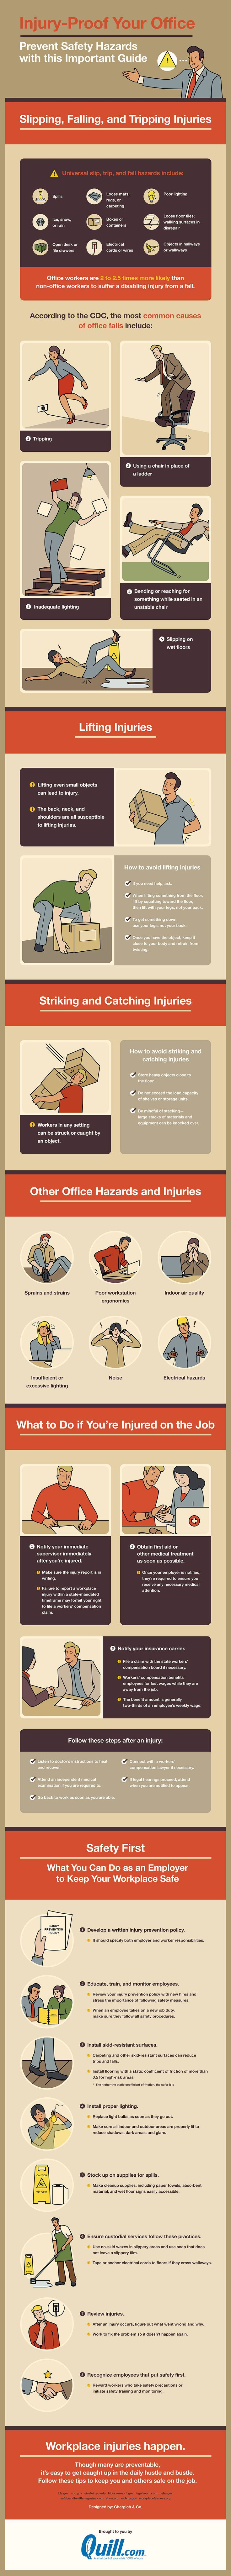 Injury–Proof Your Office Prevent Safety Hazards with this Important Guide